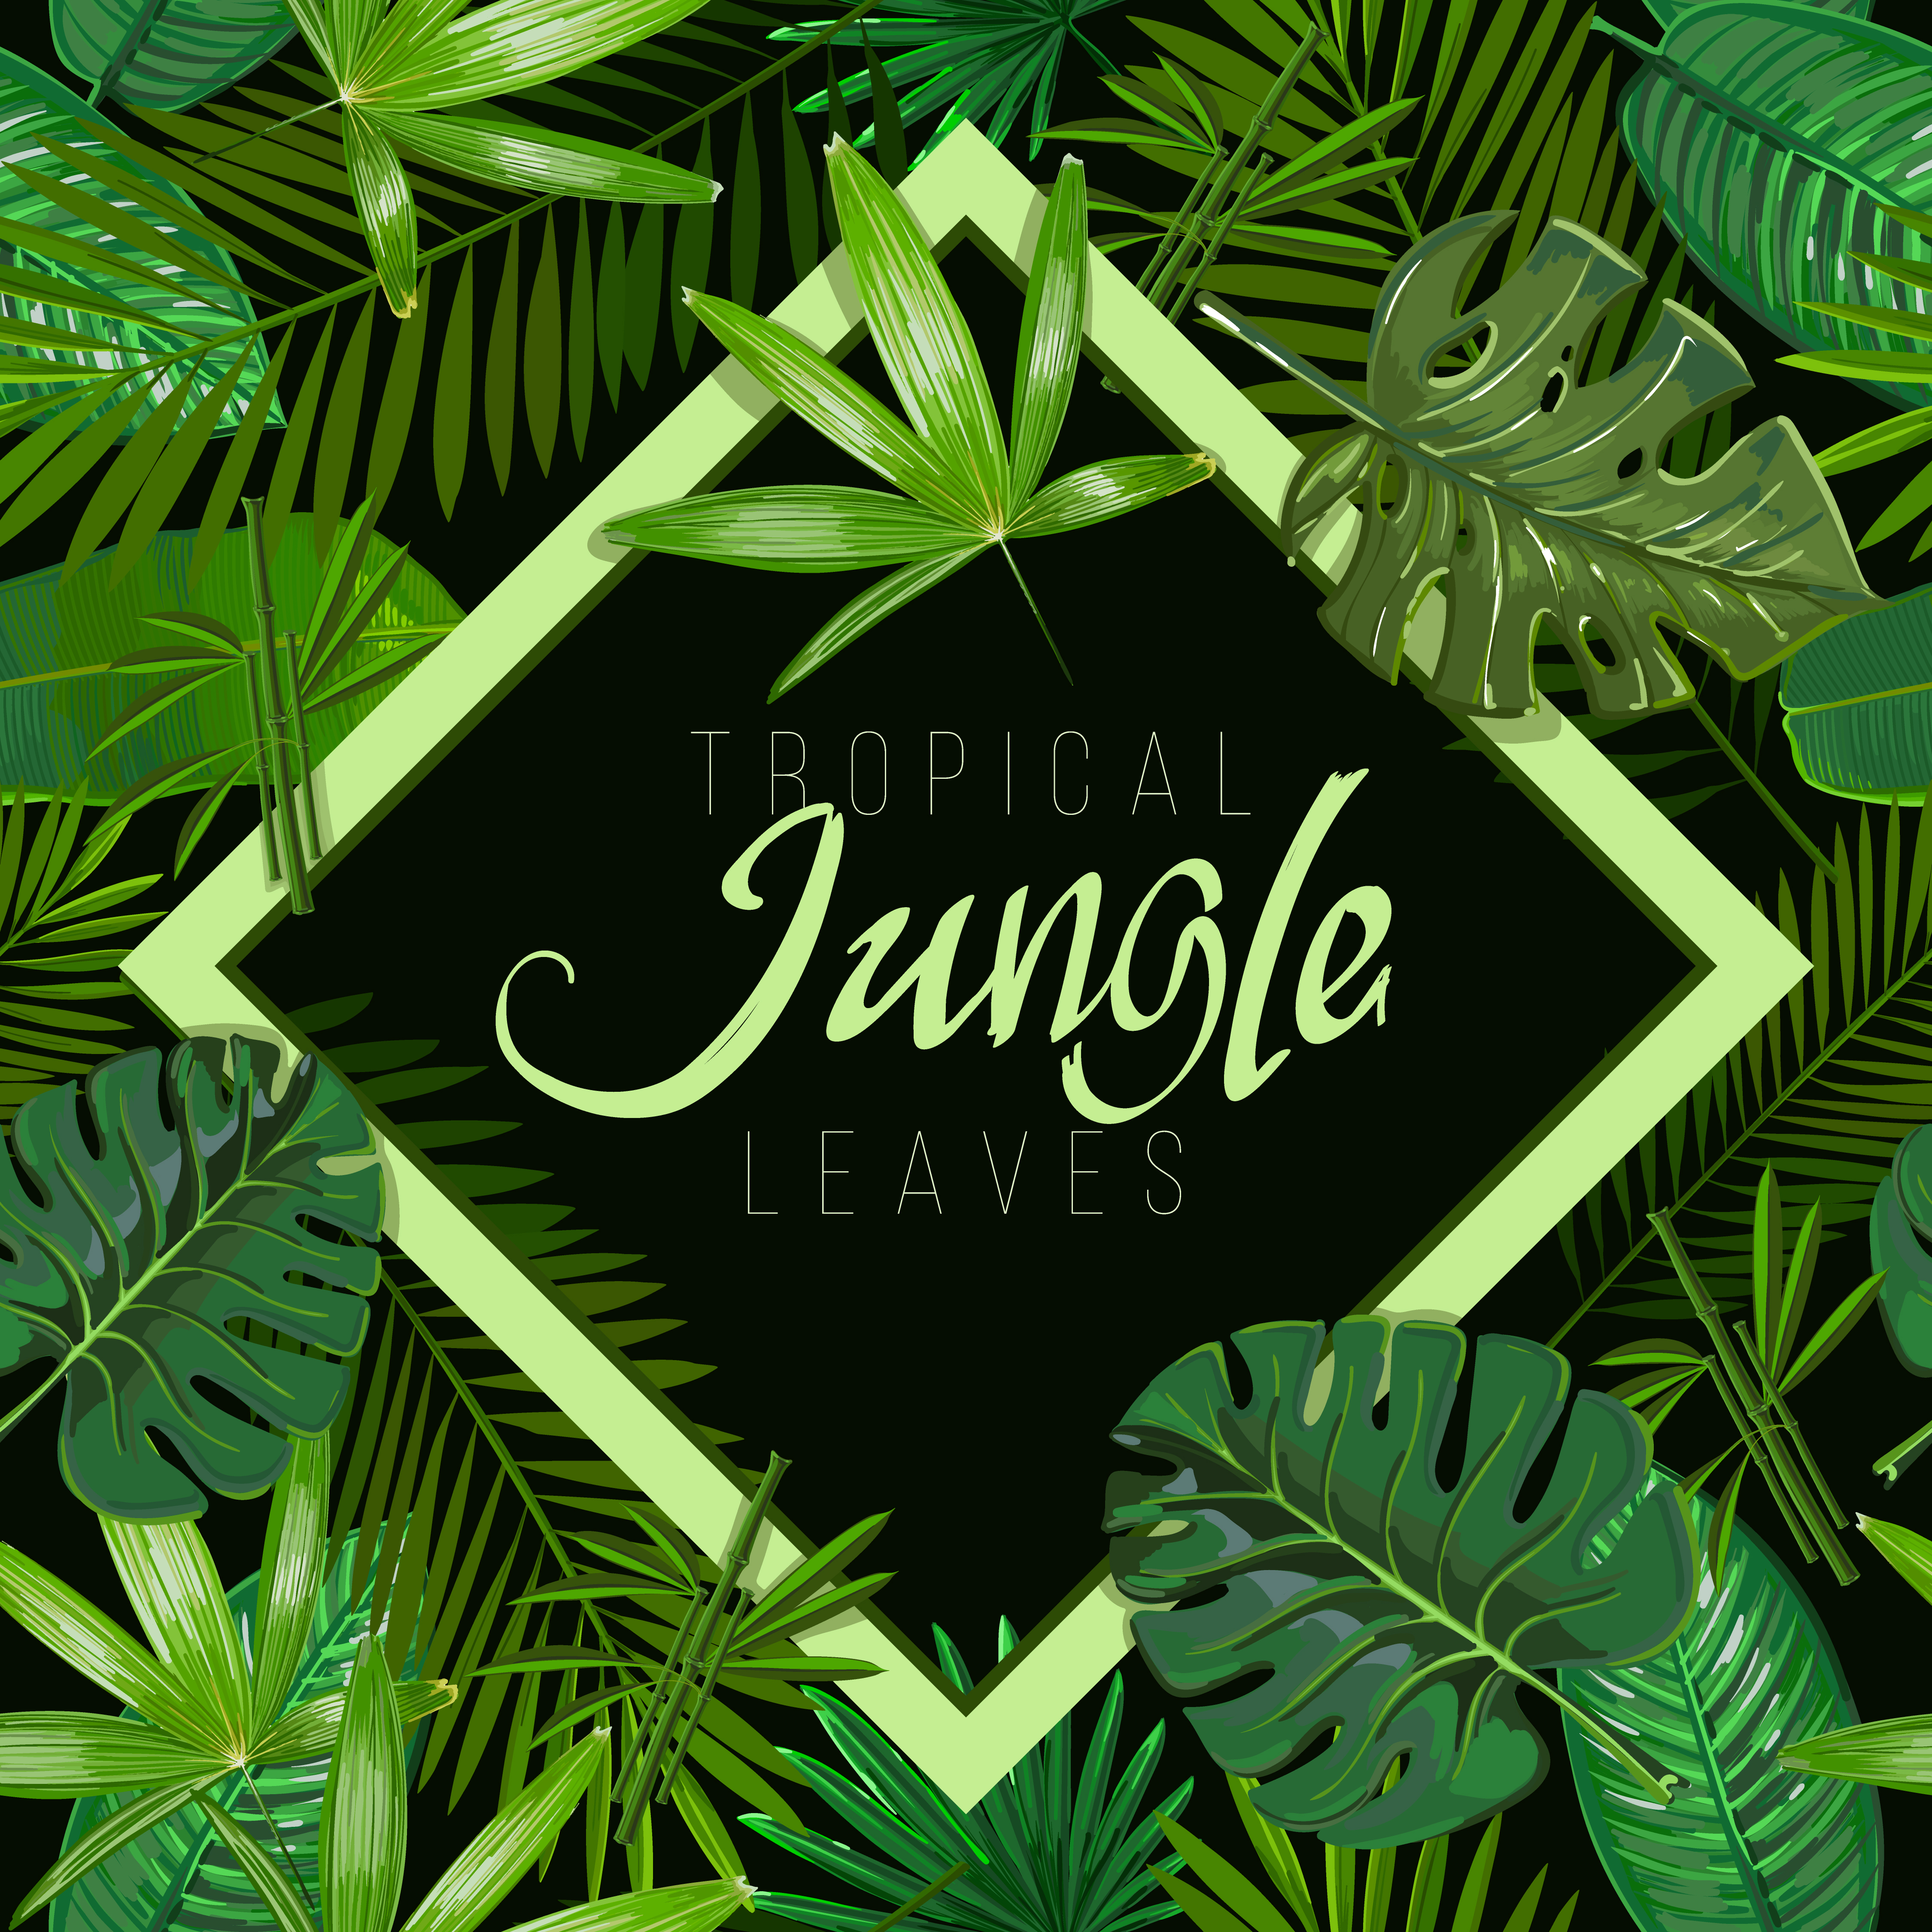 Tropical Leaves On White Background With Isolated Sign Hawaii Download Free Vectors Clipart Graphics Vector Art Sign up for free or sign in. vecteezy